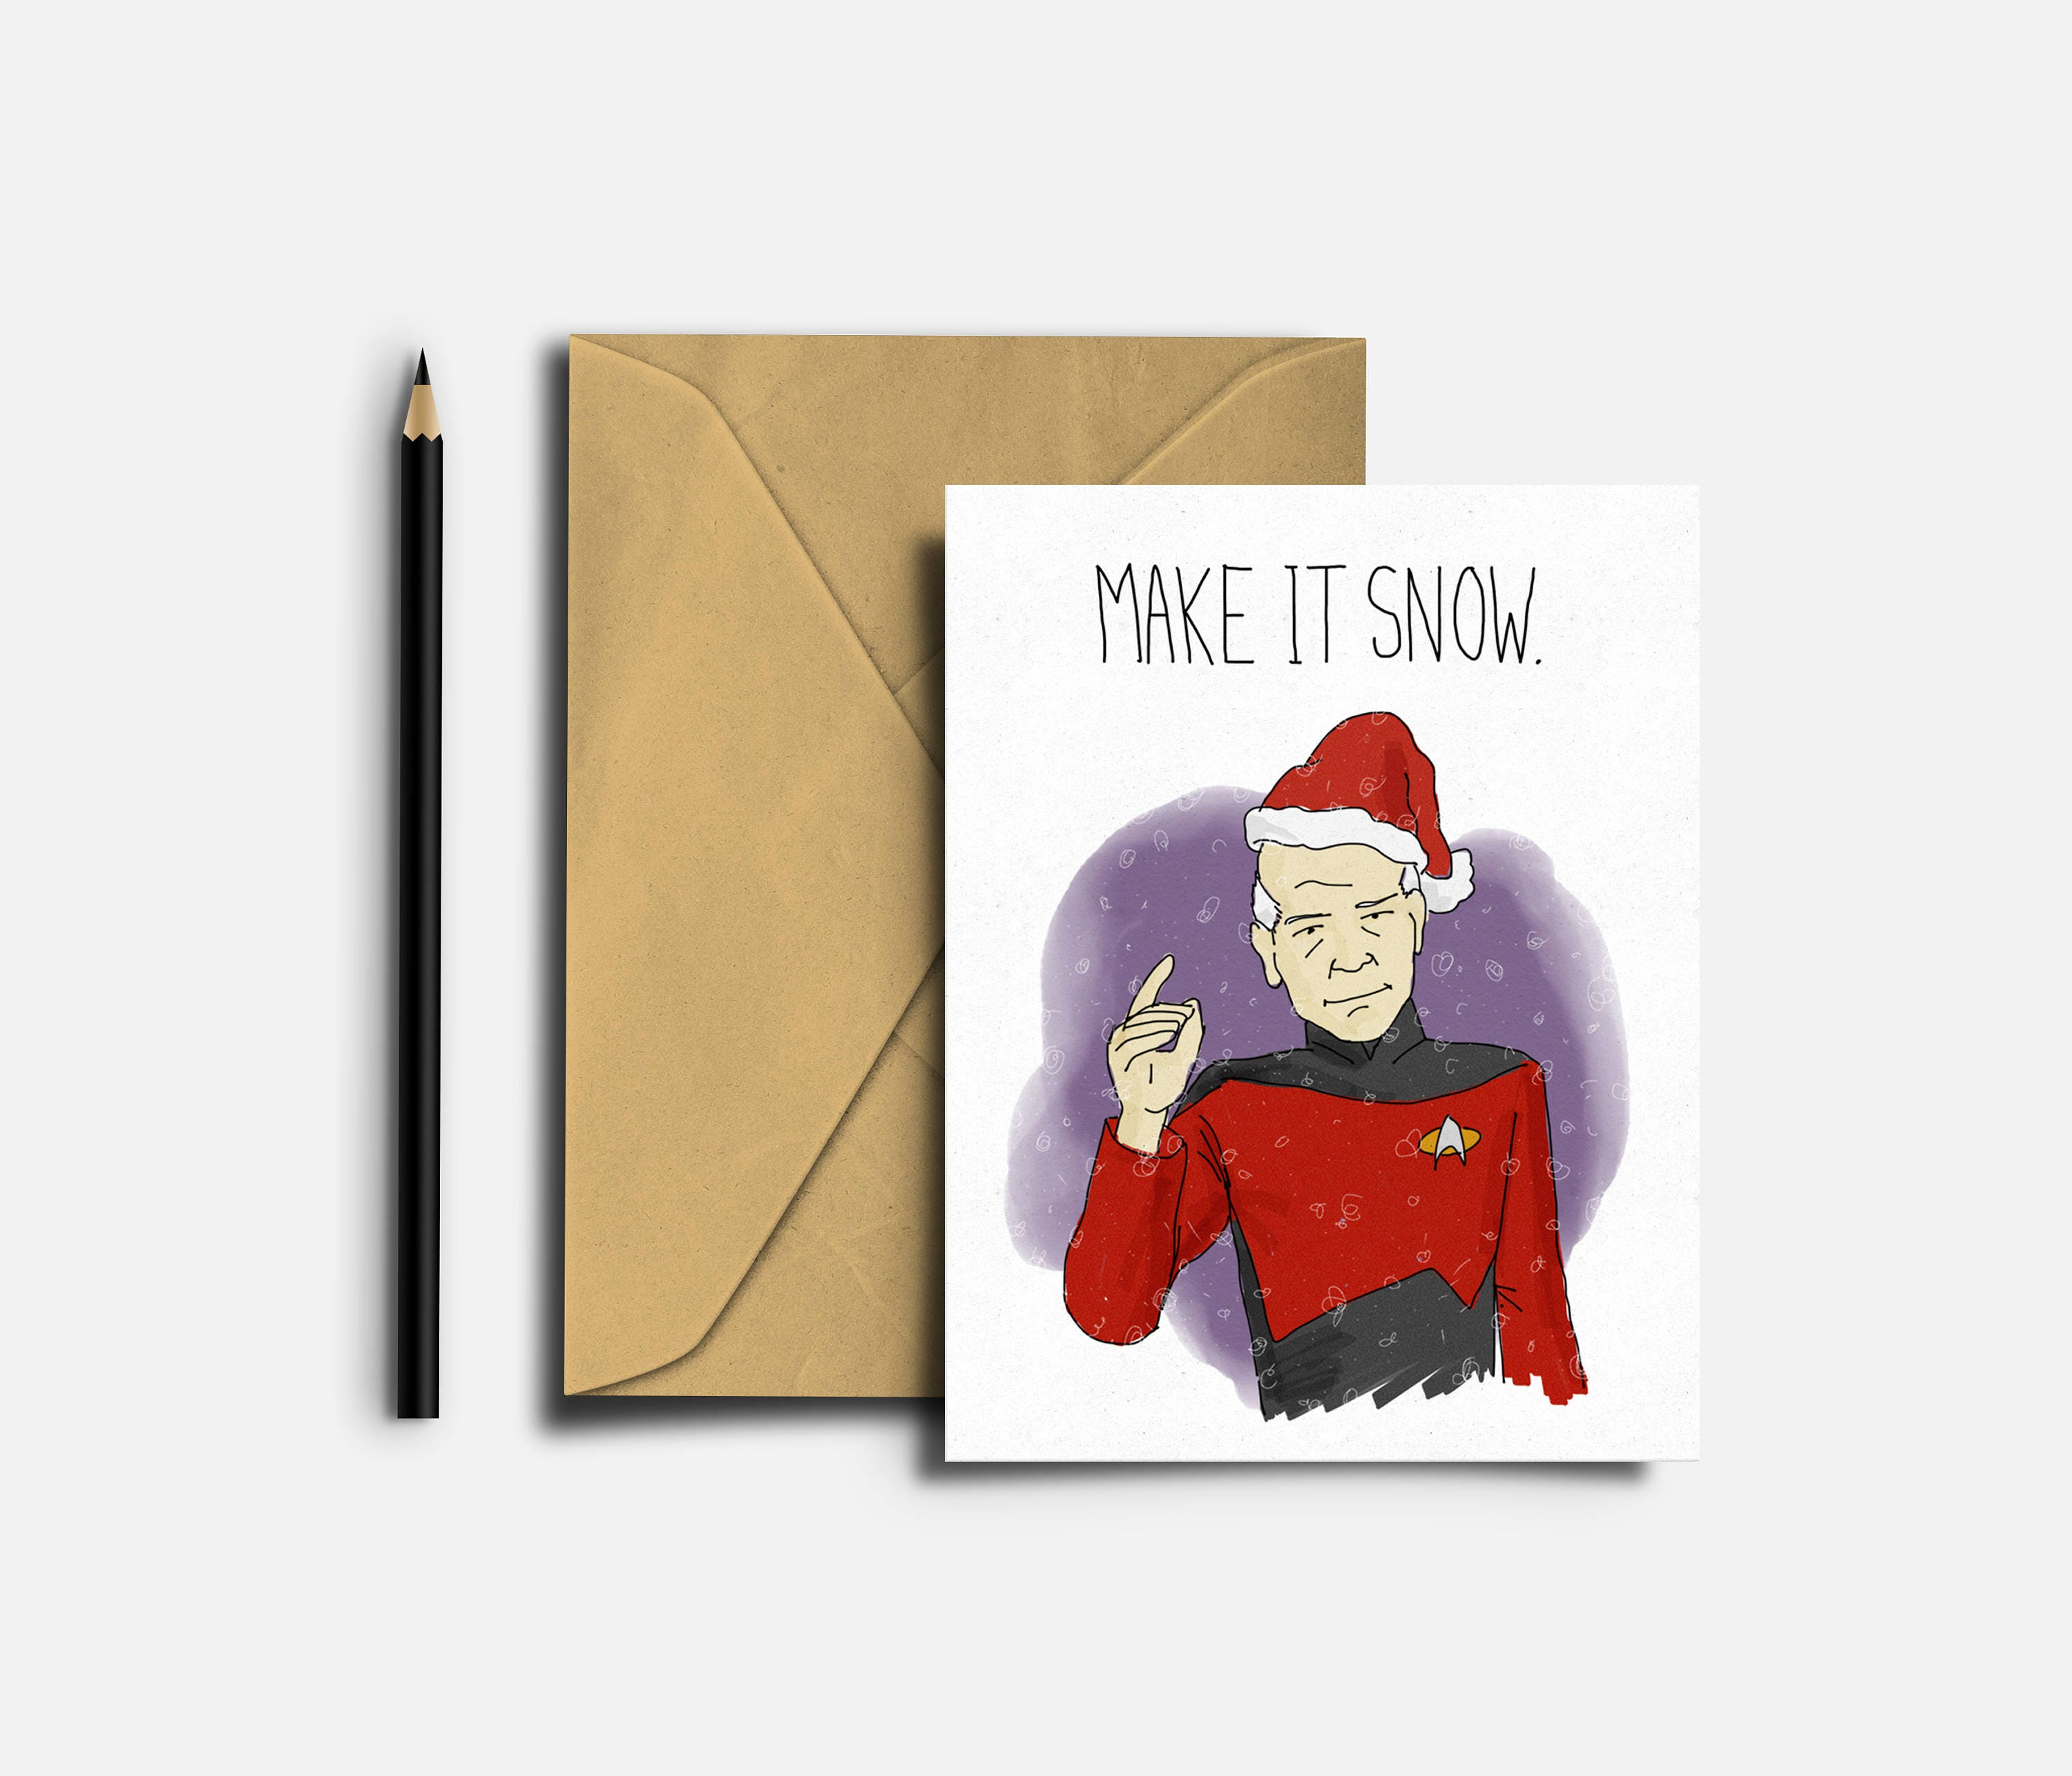 Star trek christmas card captain picard jeac luc picard zoom kristyandbryce Images